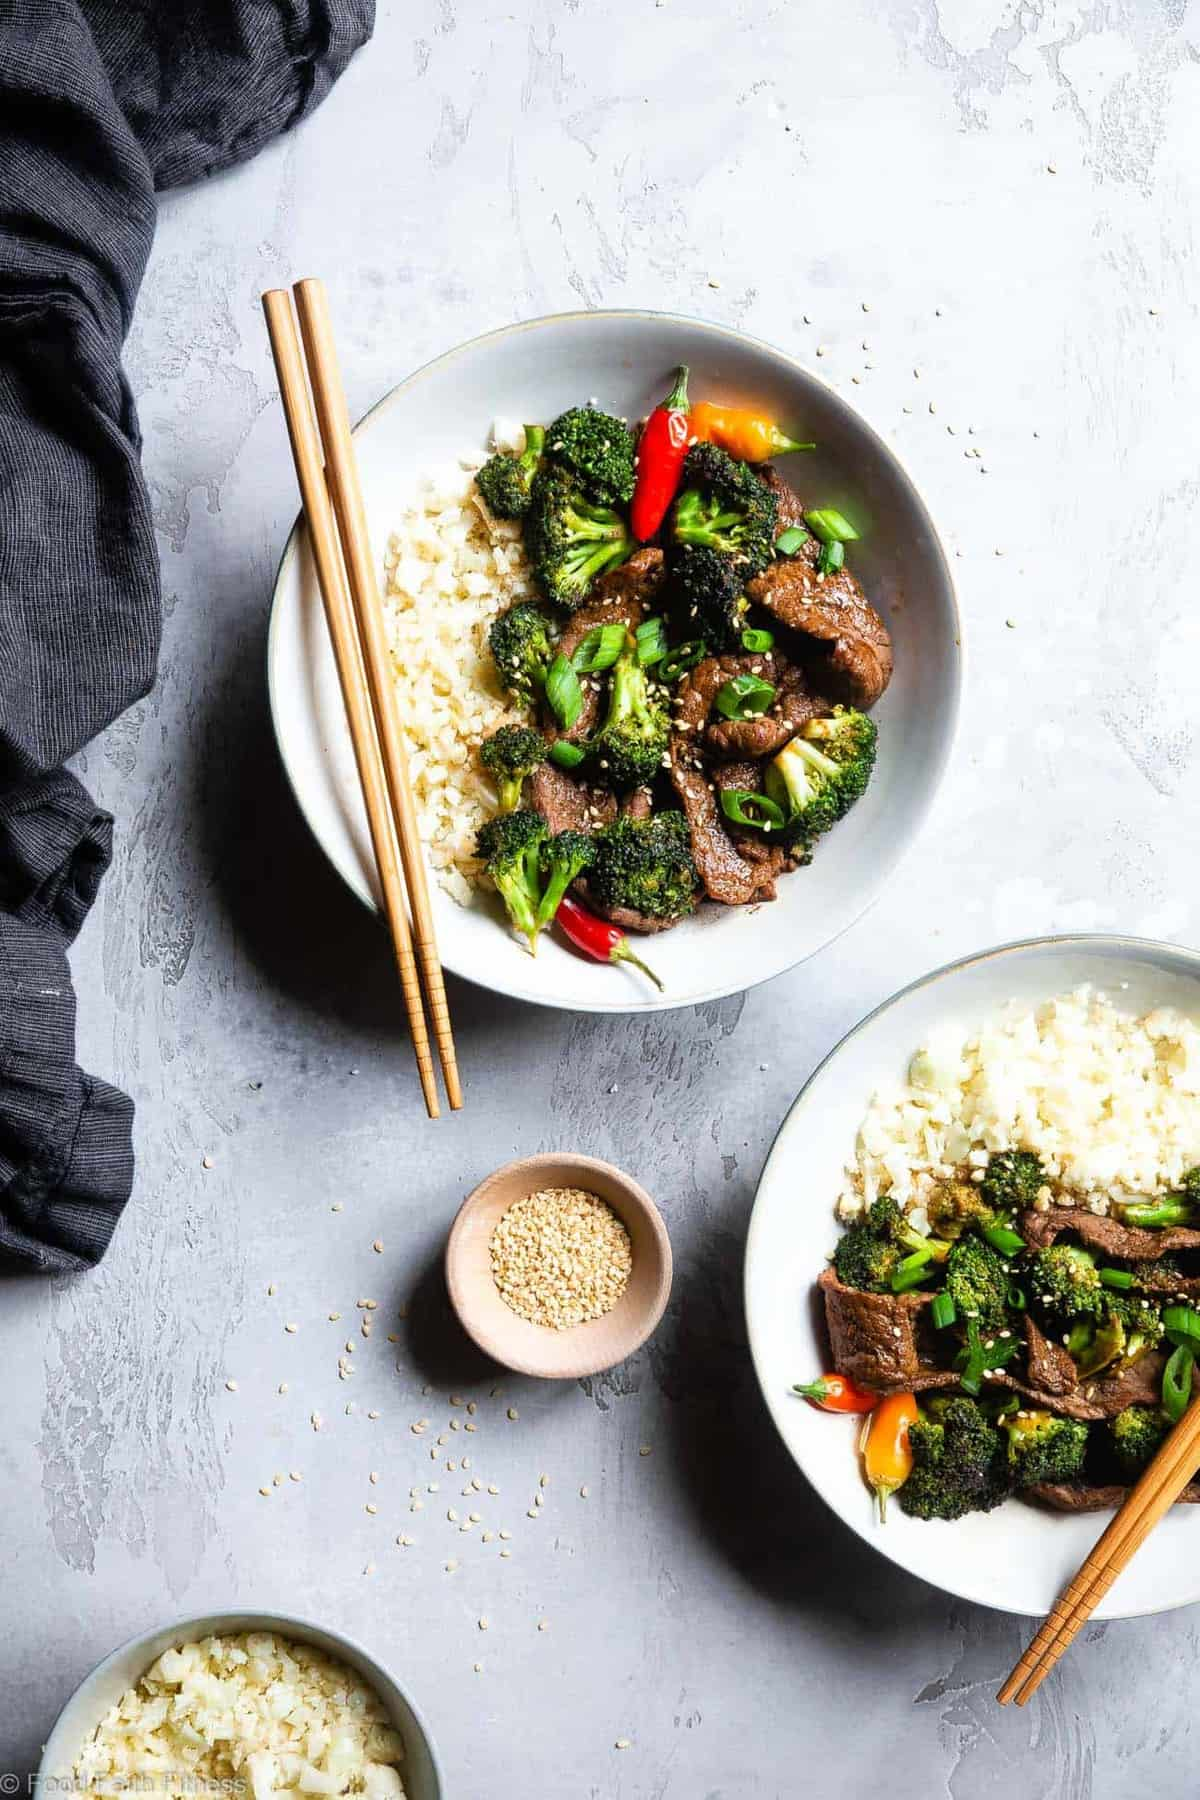 Easy Whole30 Low Carb Beef and Broccoli - This low carb stir fry is an EASY, one-pot weeknight meal that even picky eaters will love! So much yummier and healthier than takeout too! | #Foodfaithfitness |